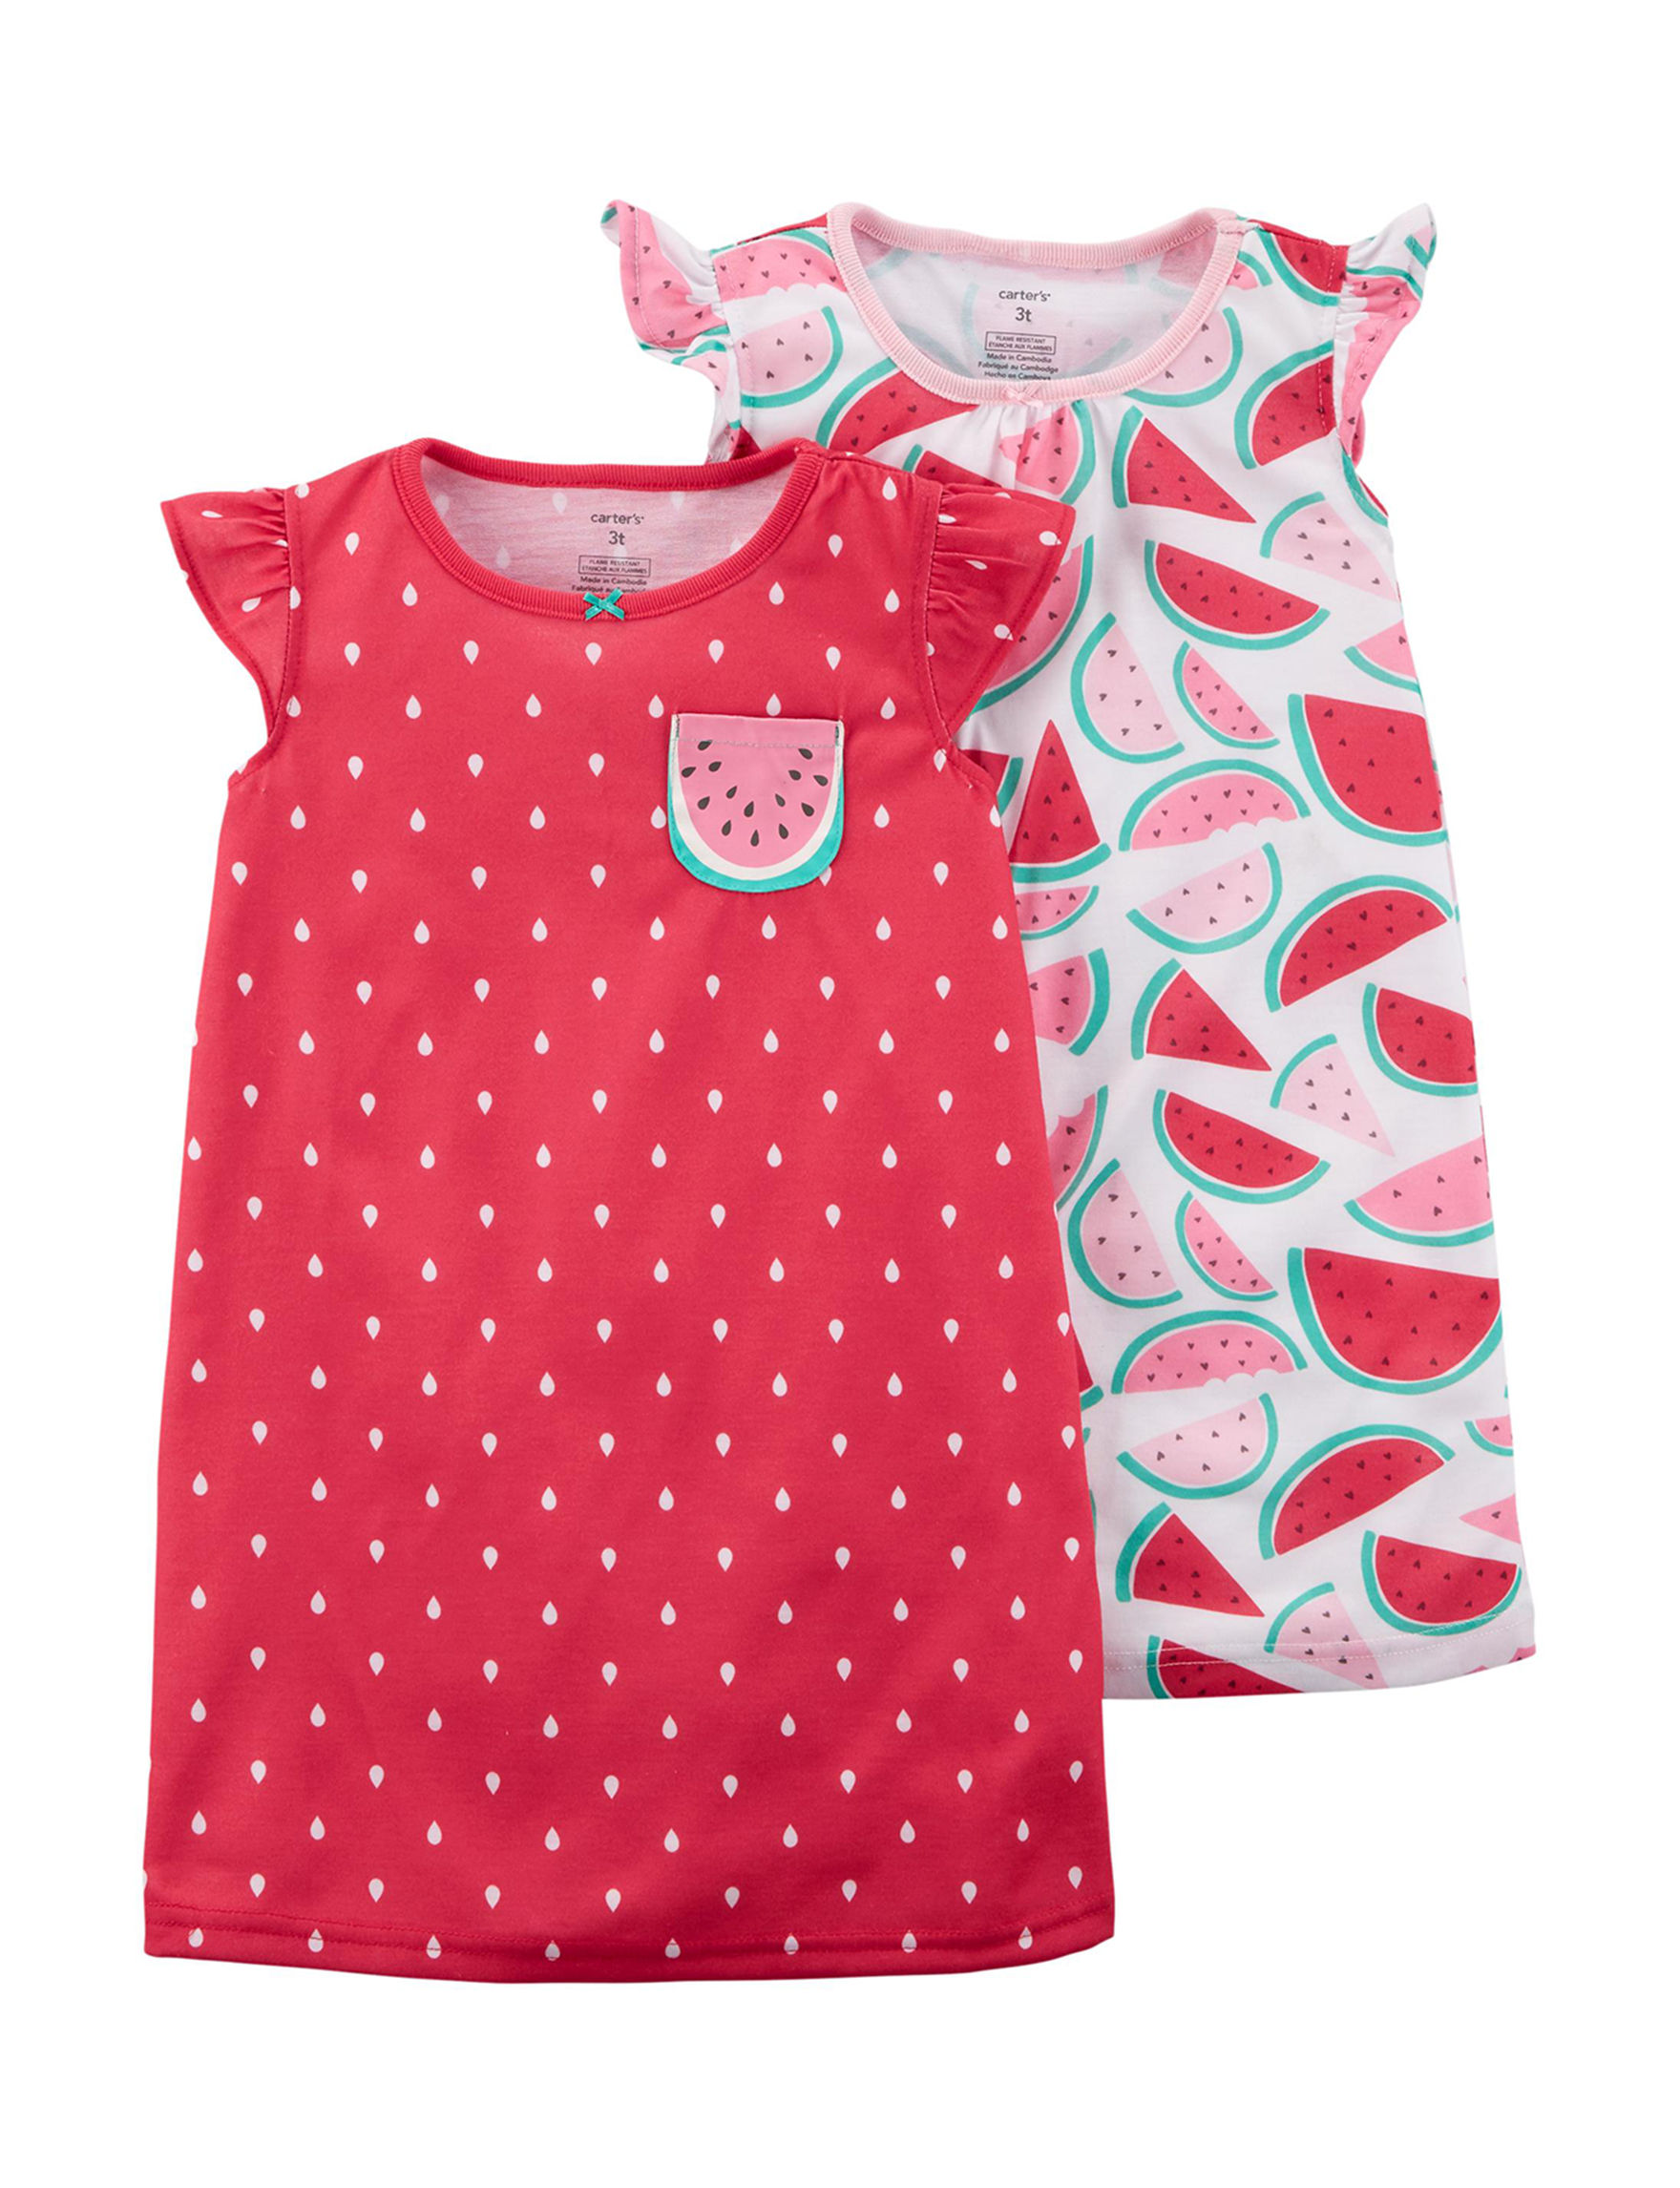 Carter's Red Multi Nightgowns & Sleep Shirts